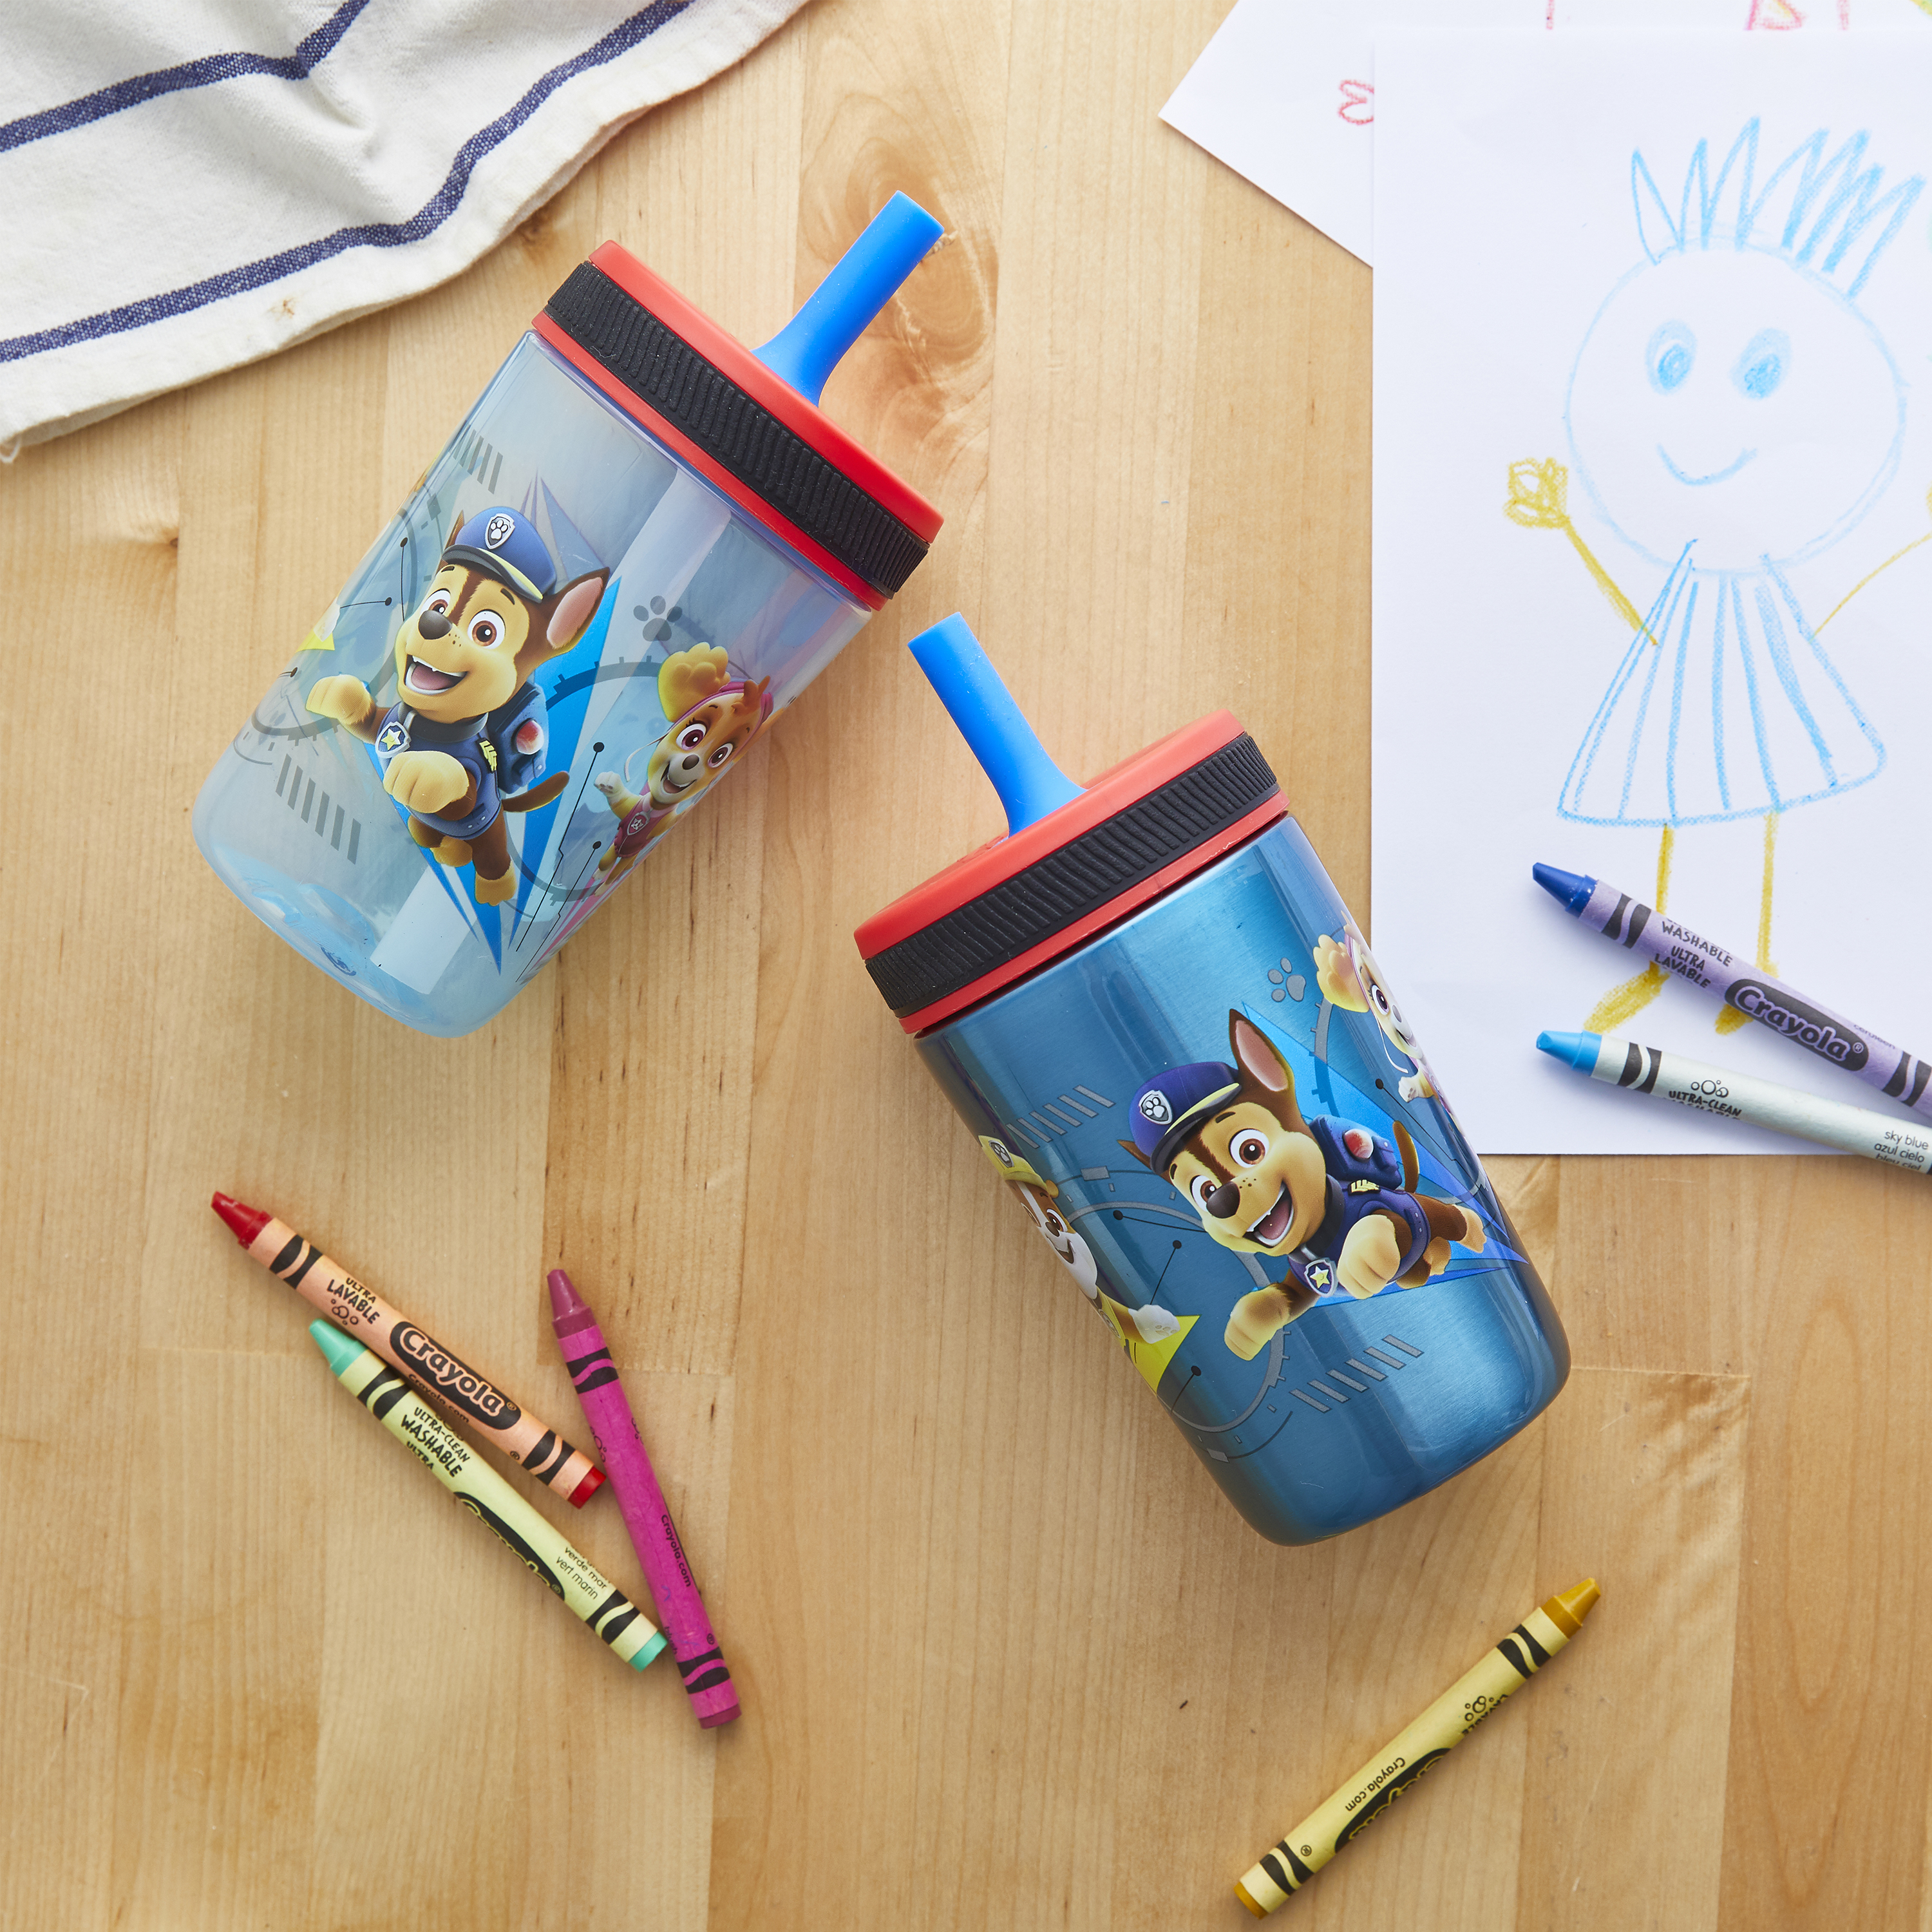 Paw Patrol 15  ounce Plastic Tumbler, Chase, Skye, Marshall and Friends, 3-piece set slideshow image 7